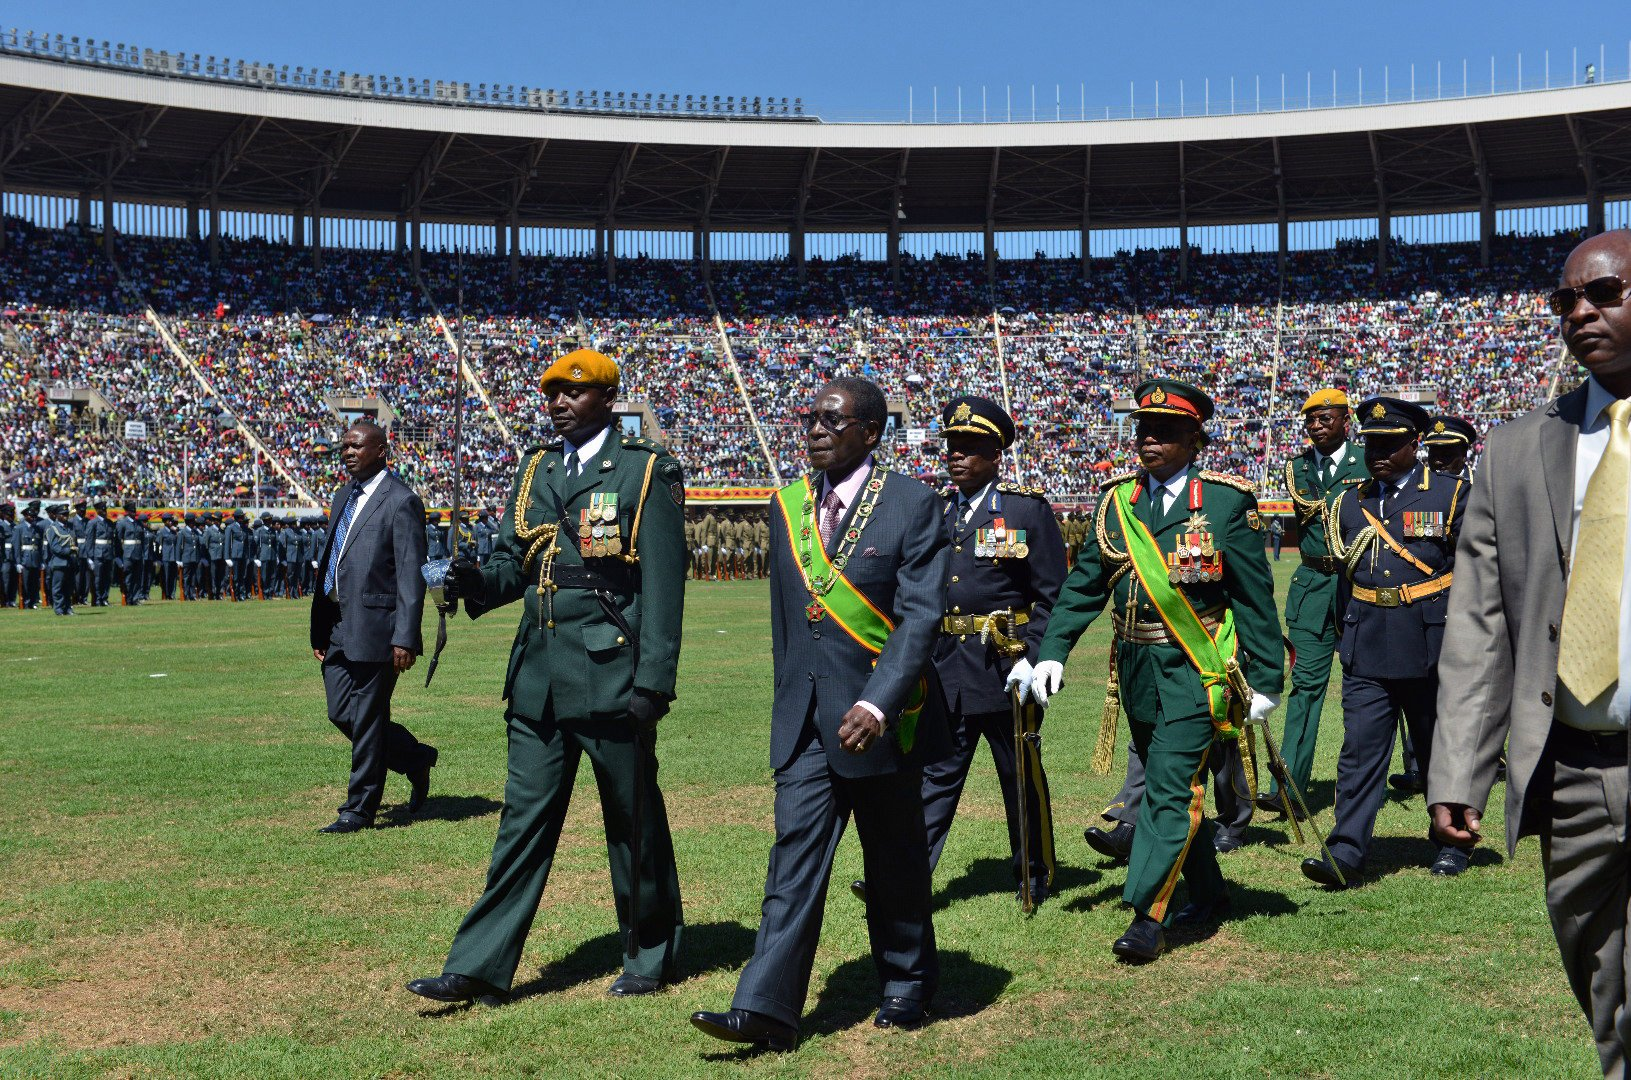 Mugabe-less Zanu-PF is still the party to beat